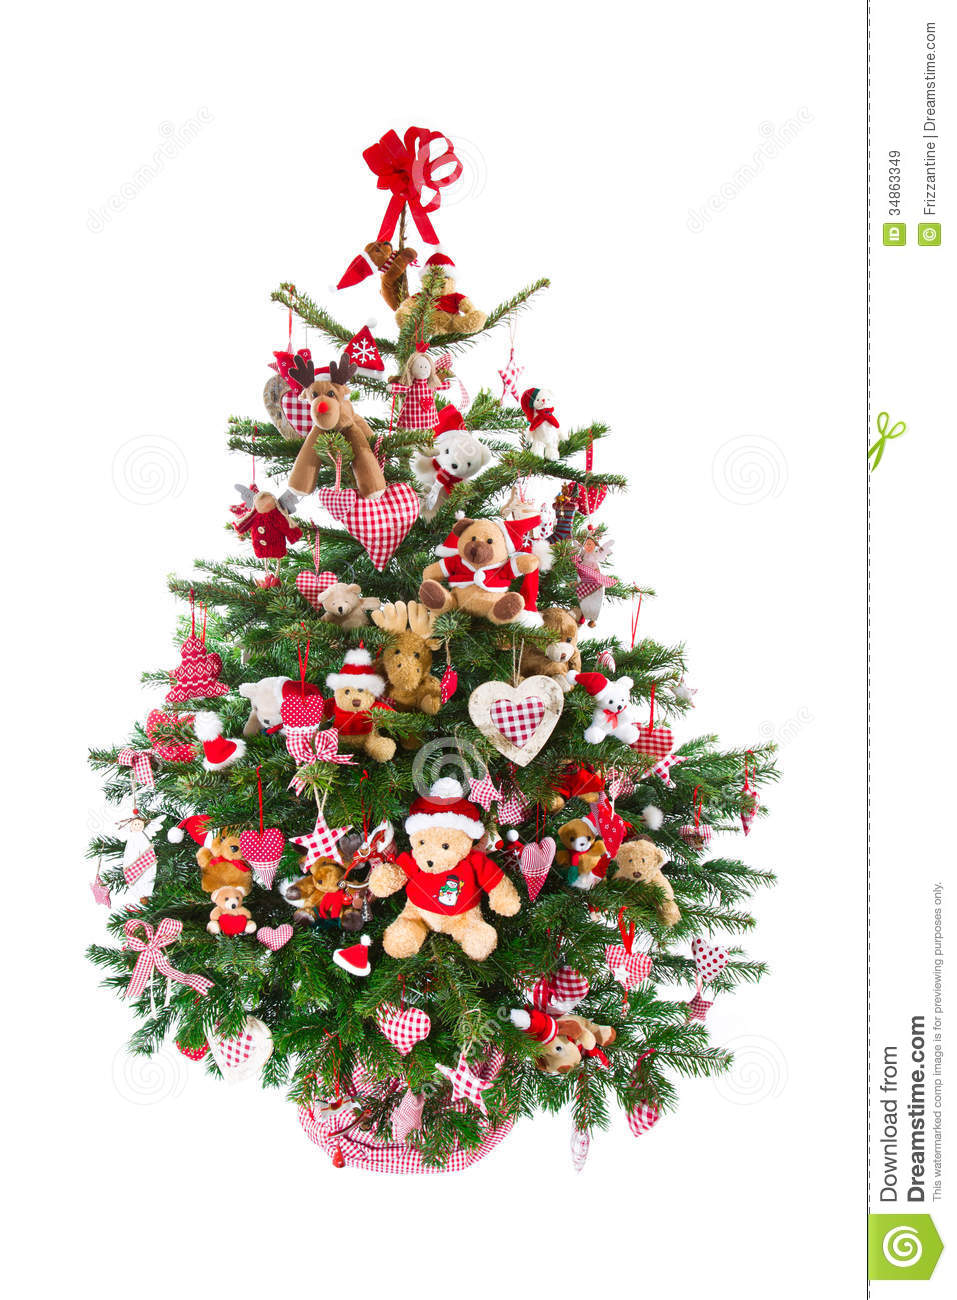 decoracao arvore de natal vermelha:Red and Green Decorated Christmas Trees